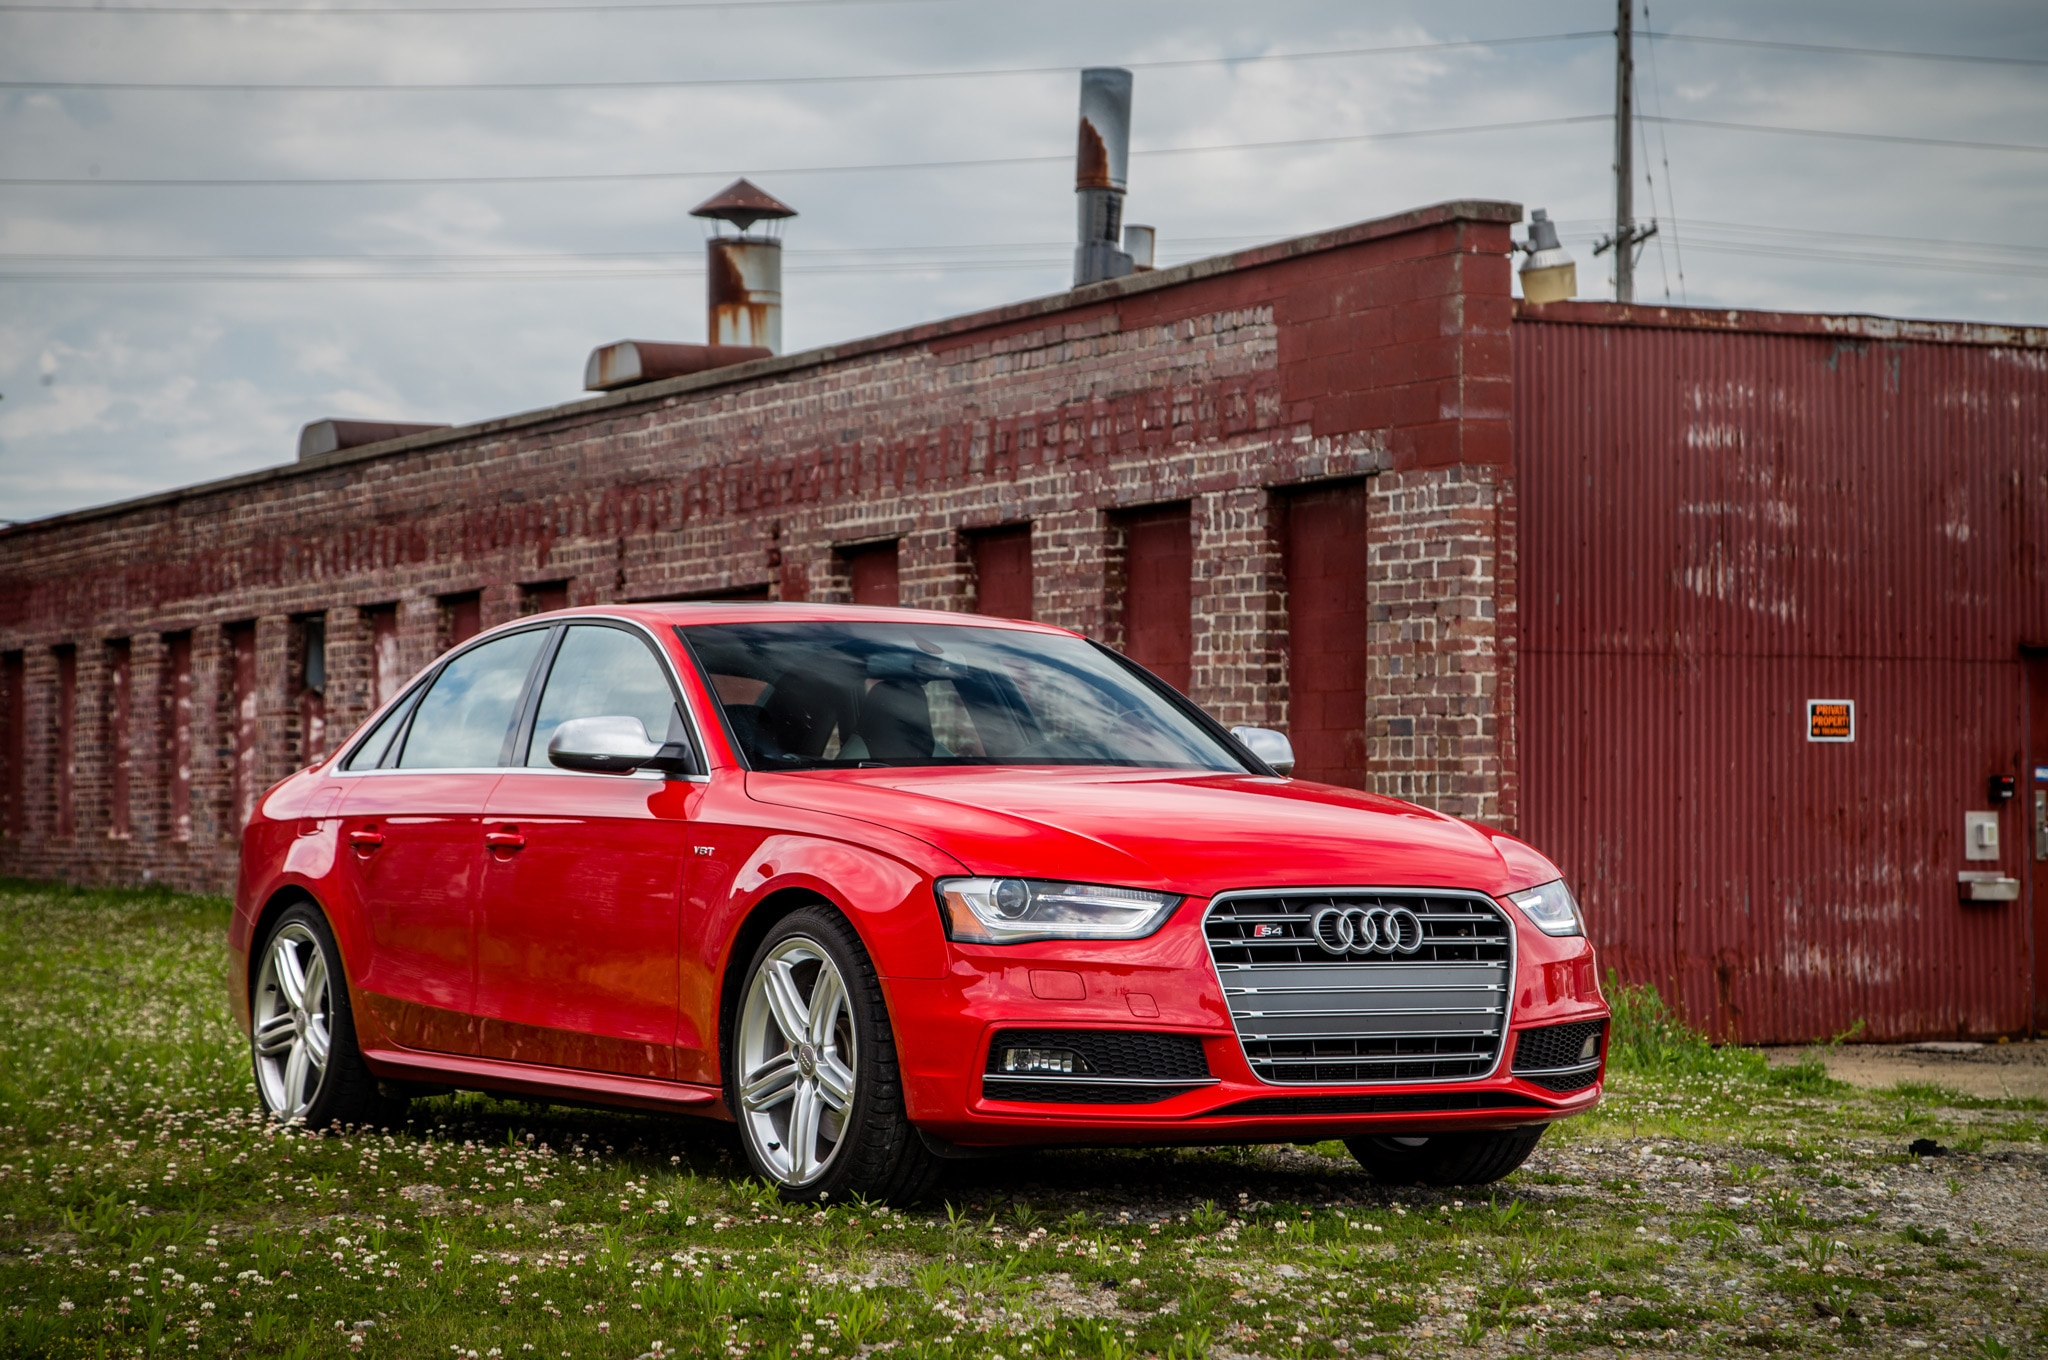 Audi Manuals Auto Electrical Wiring Diagram 22794 Hunter Proper Sendoff Driving The Final S4 Offered With A